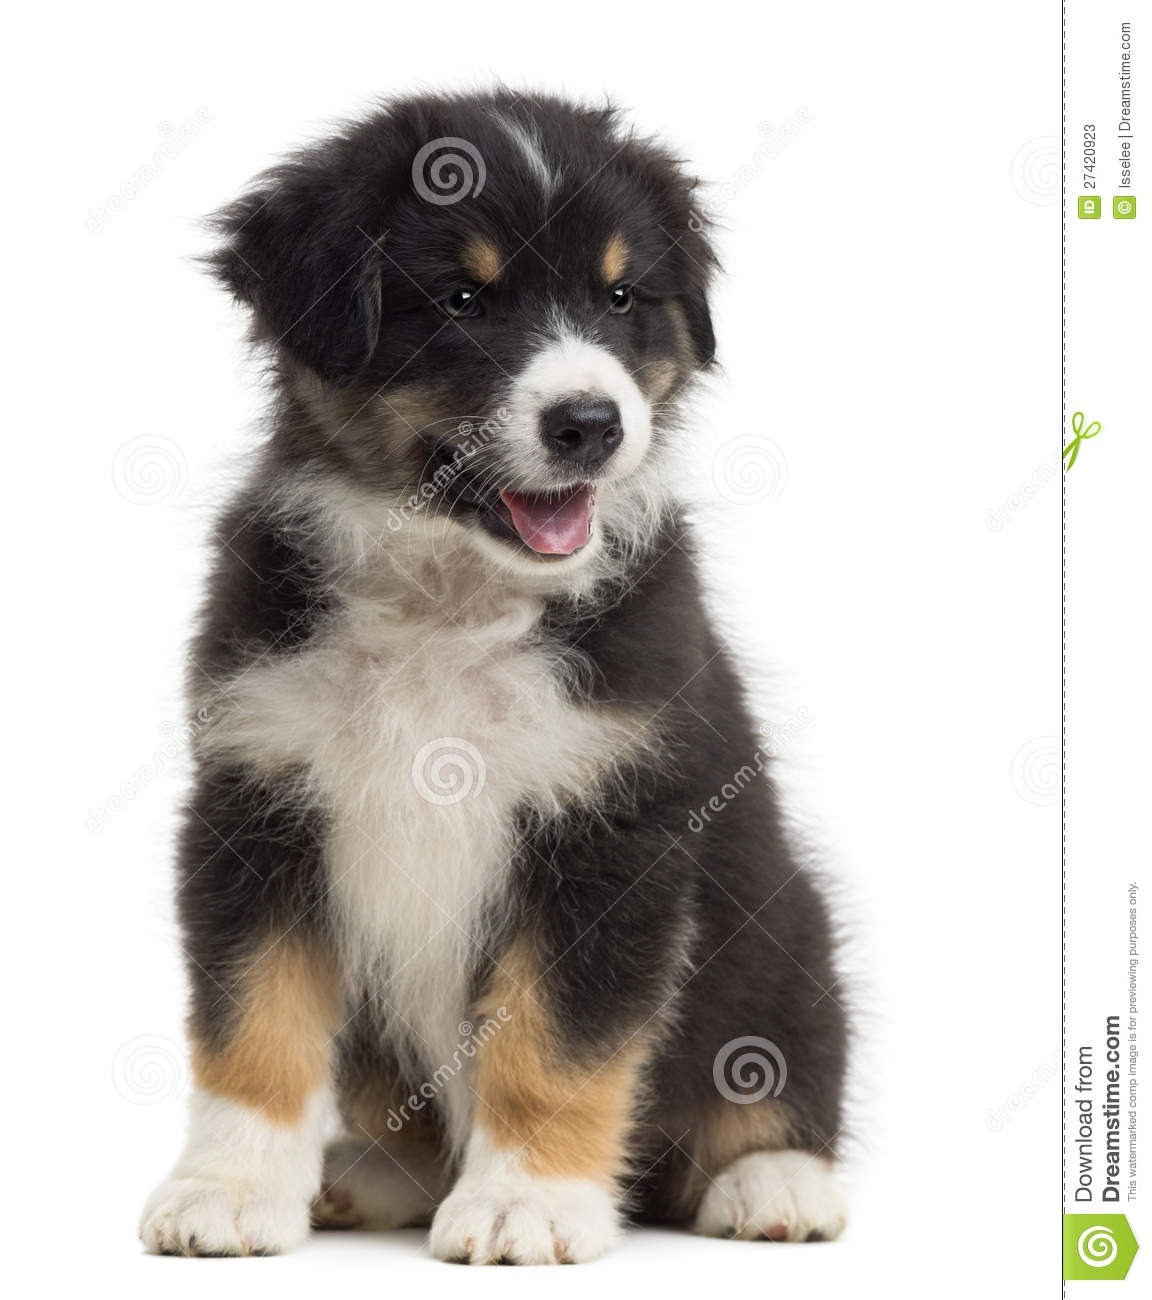 Of Puppy Australian Shepherd Stock Image To Download At Photo | Dog ...